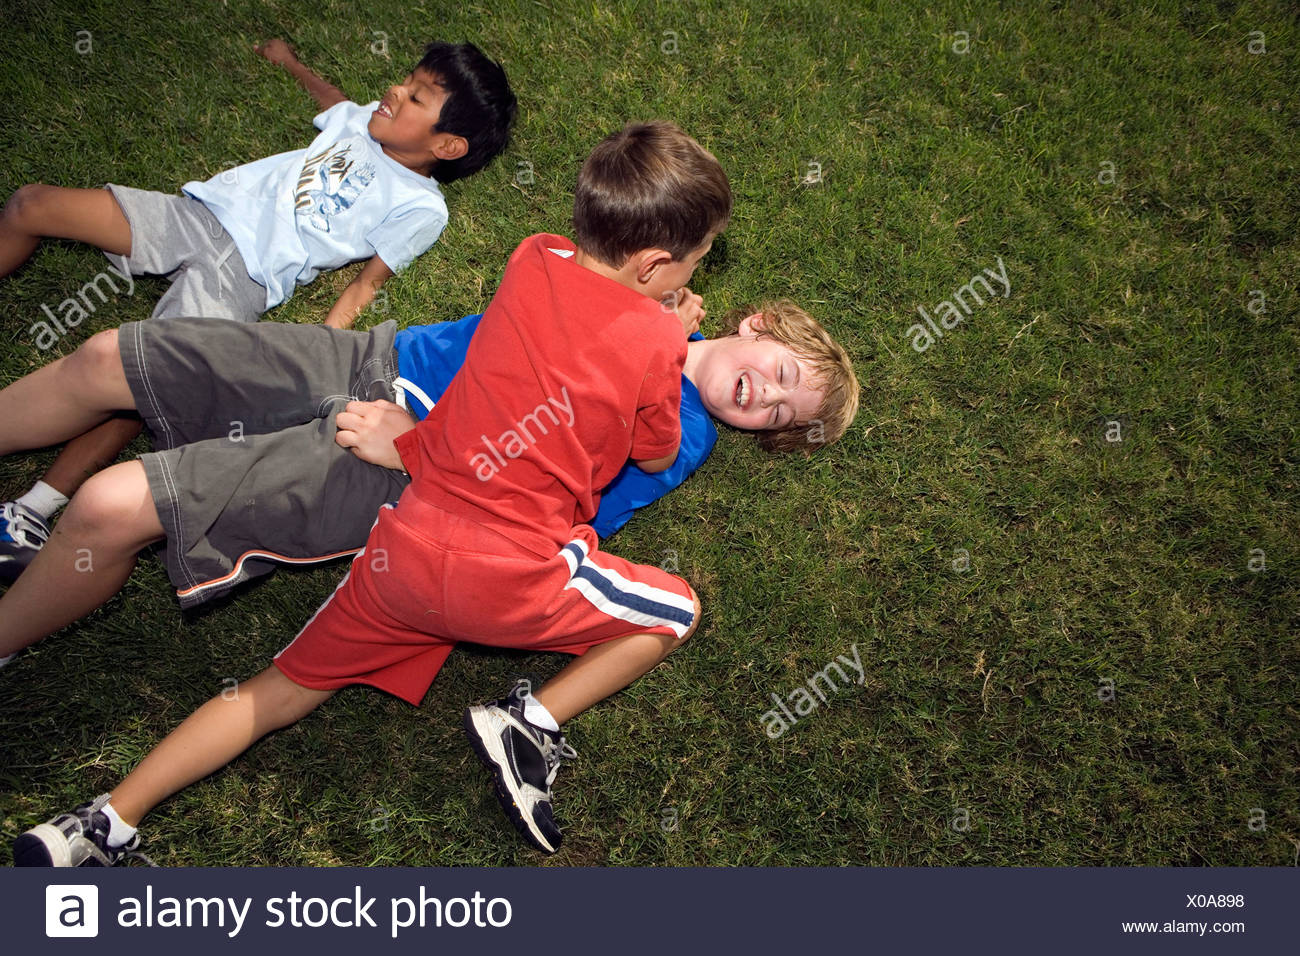 Boys Roughing Housing outside on Lawn - Stock Image